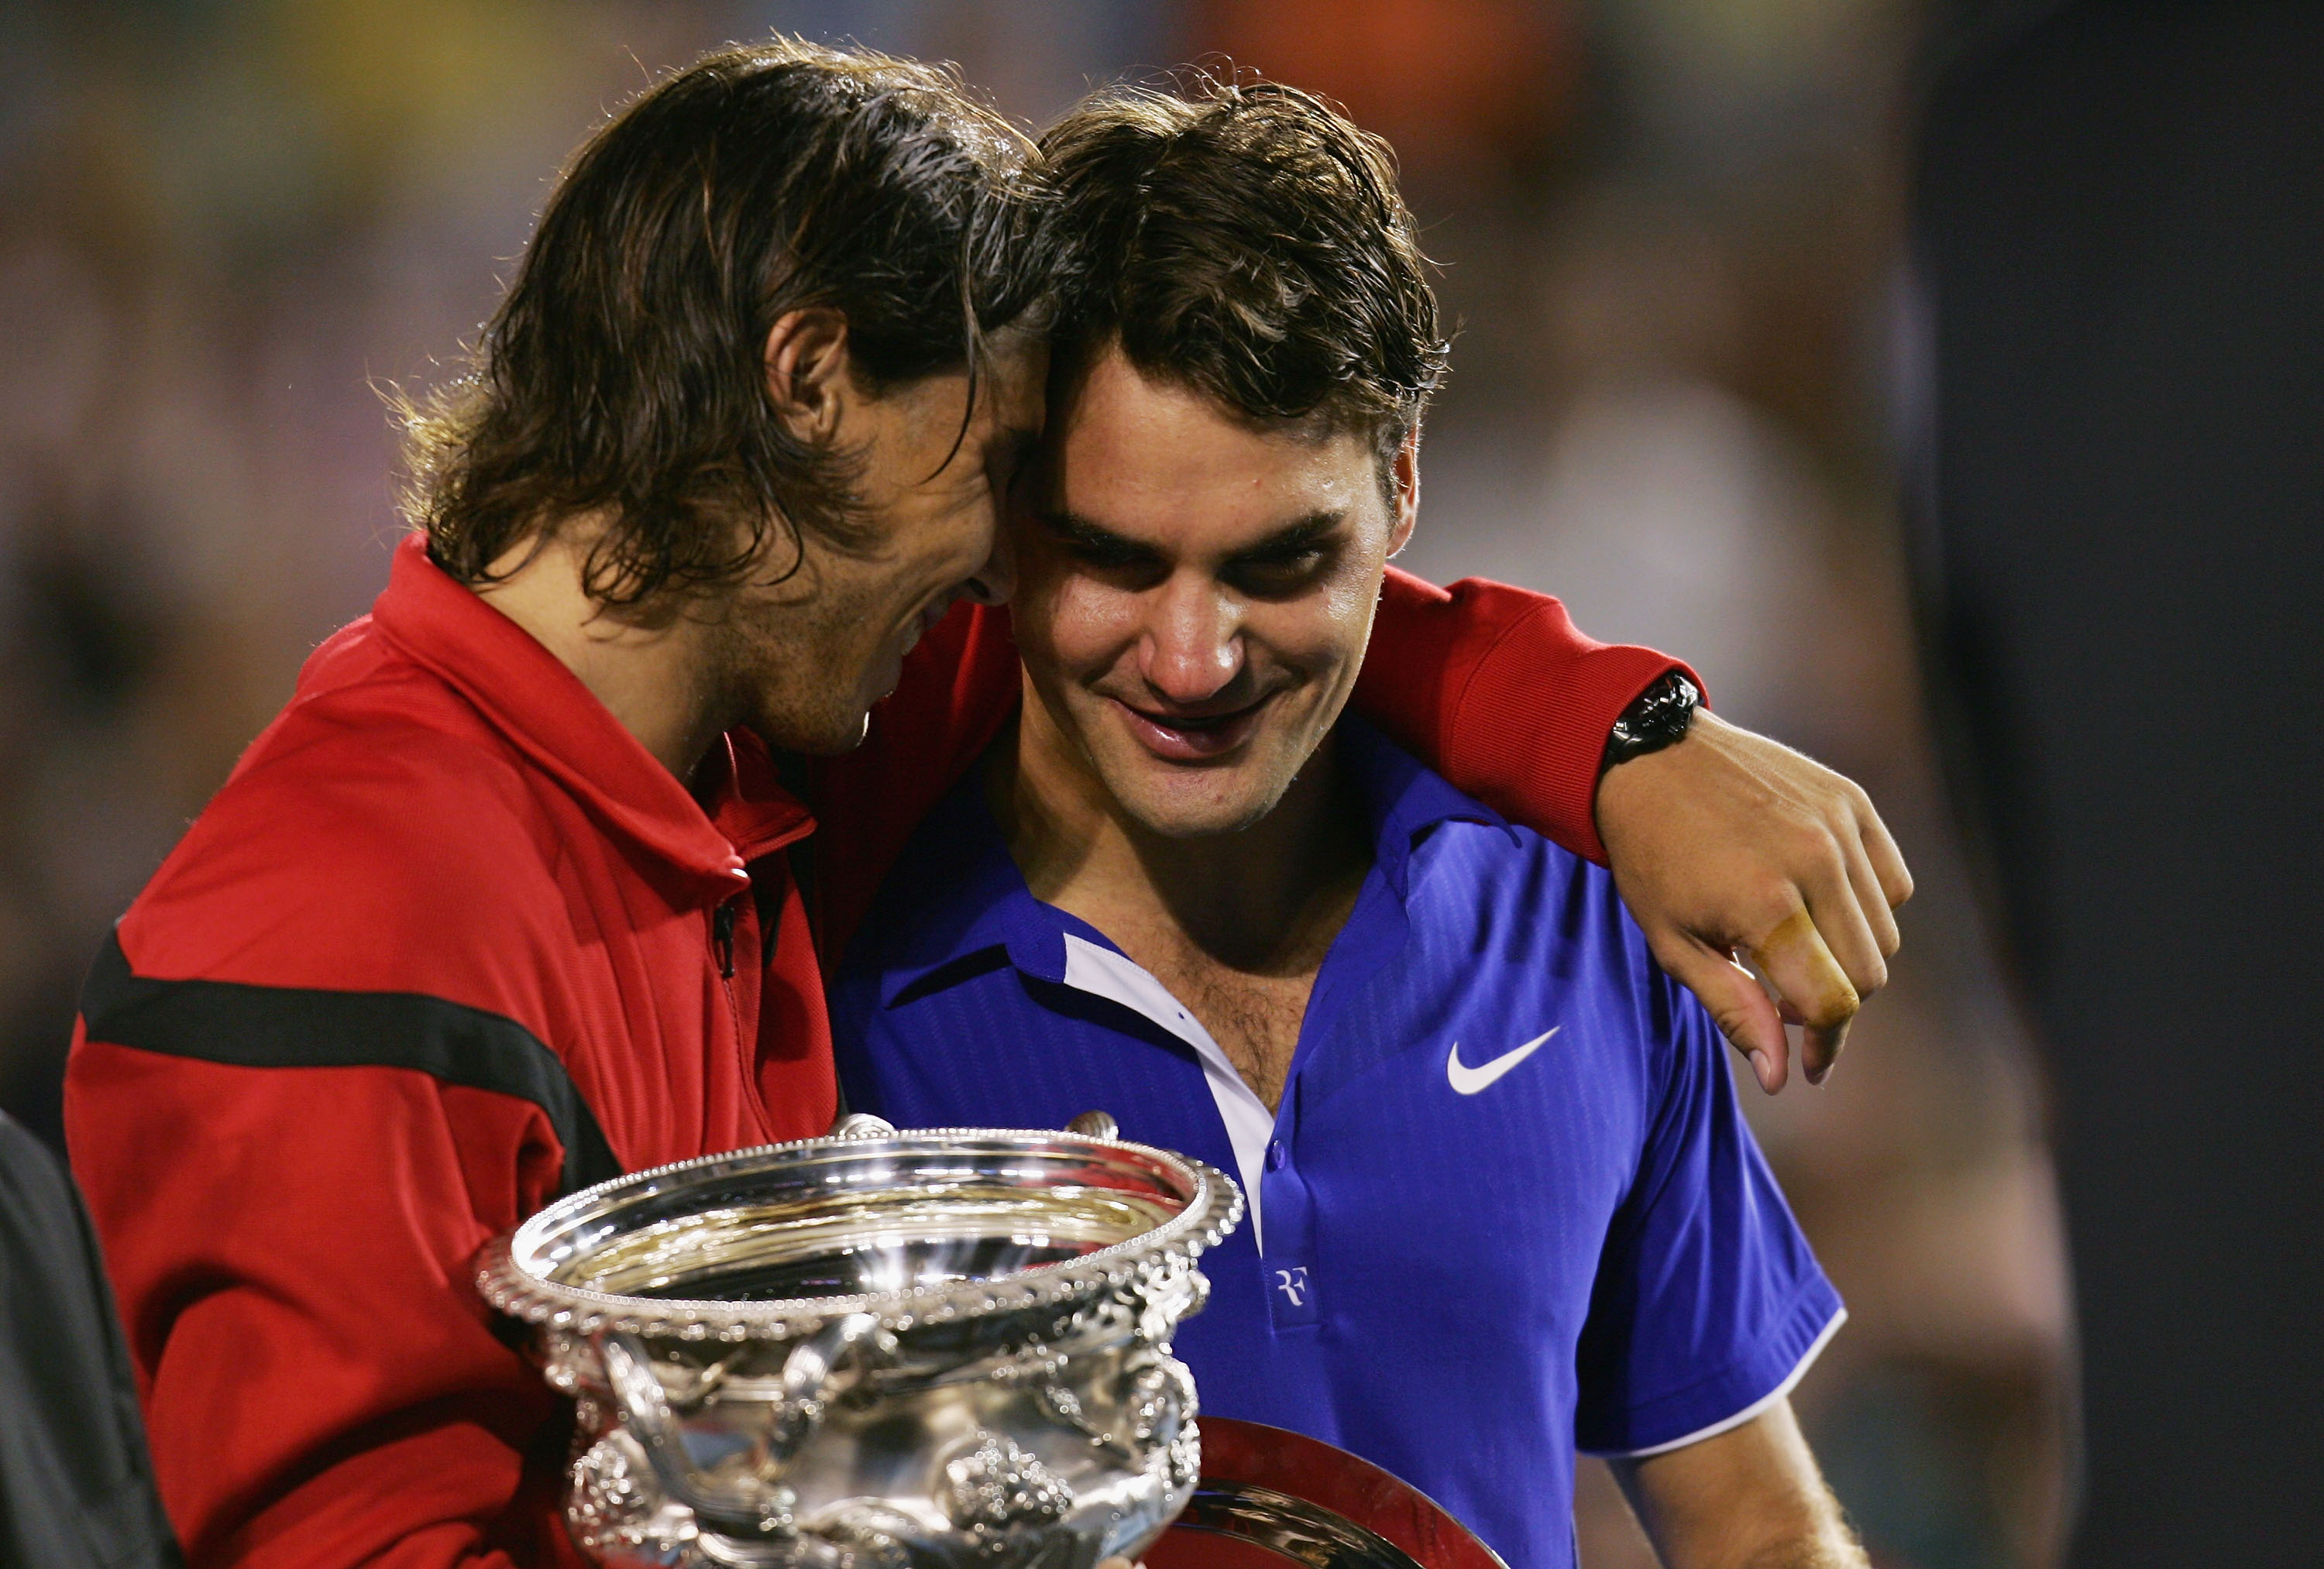 MELBOURNE, AUSTRALIA - FEBRUARY 01:  Rafael Nadal of Spain consoles Roger Federer of Switzerland during the trophy presentation after his men's final match during day fourteen of the 2009 Australian Open at Melbourne Park on  February 1, 2009 in Melbourne